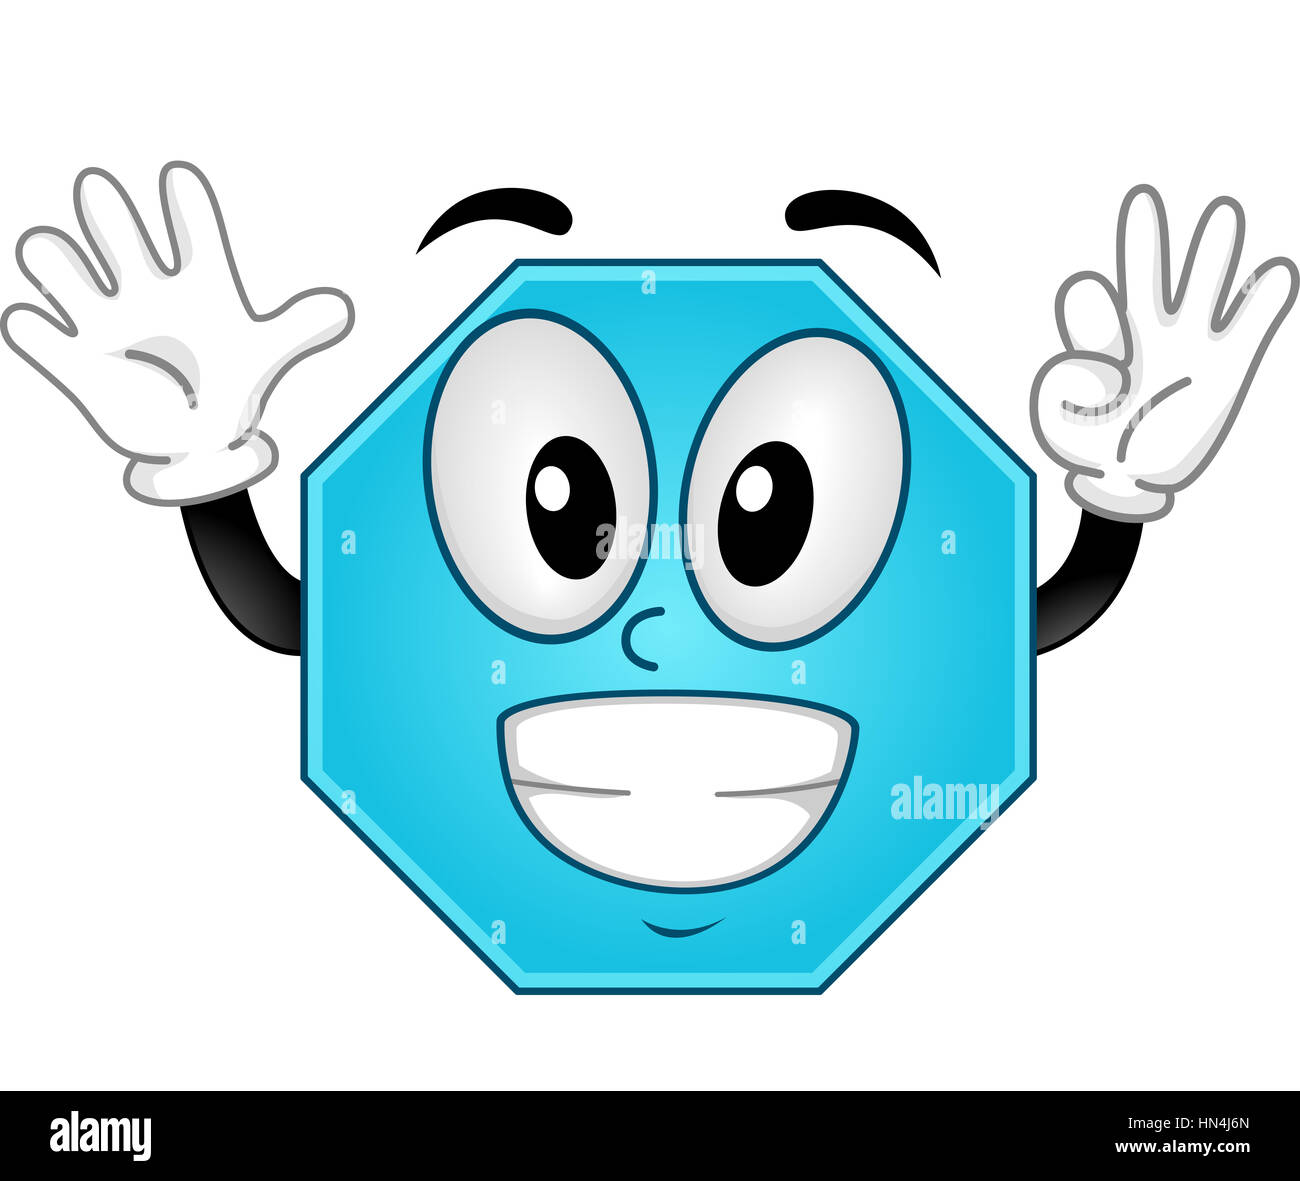 hight resolution of mascot illustration of an octagon showing eight fingers stock image